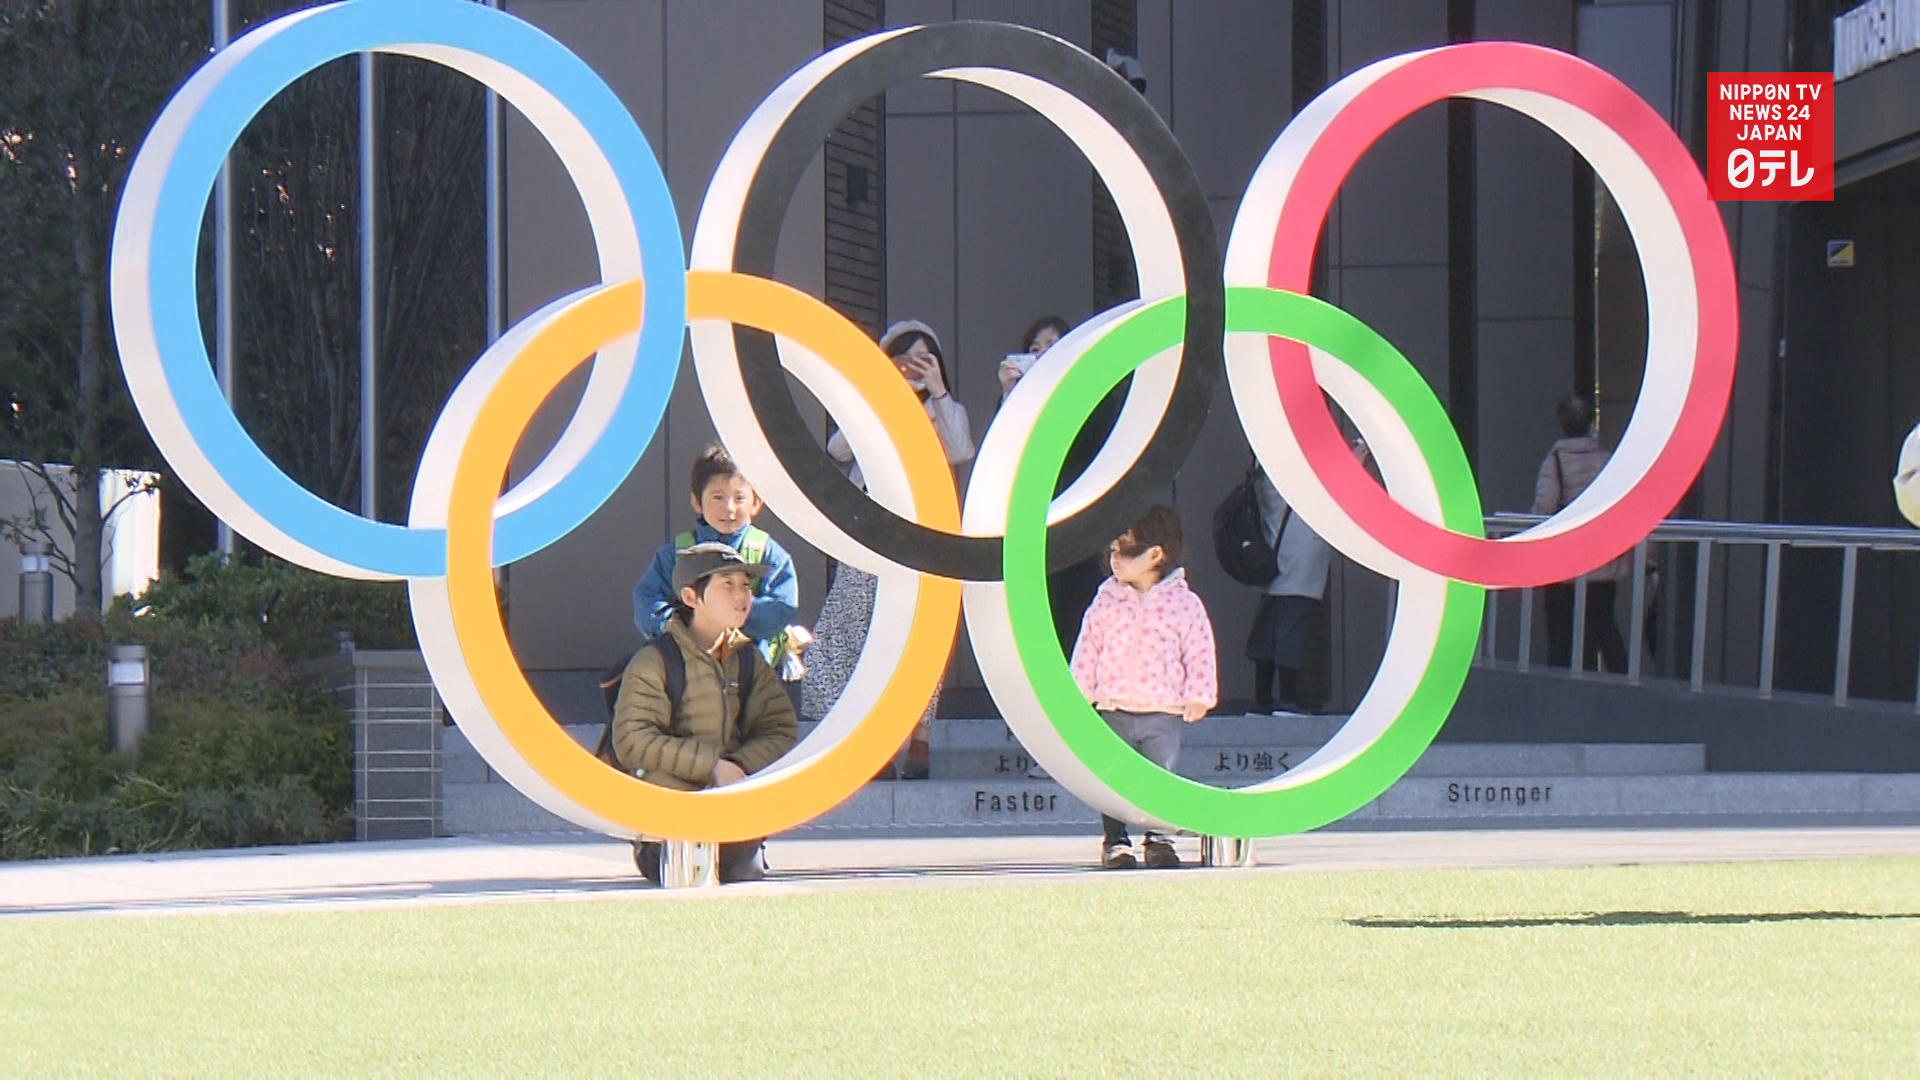 Tokyo Olympic games may be simplified